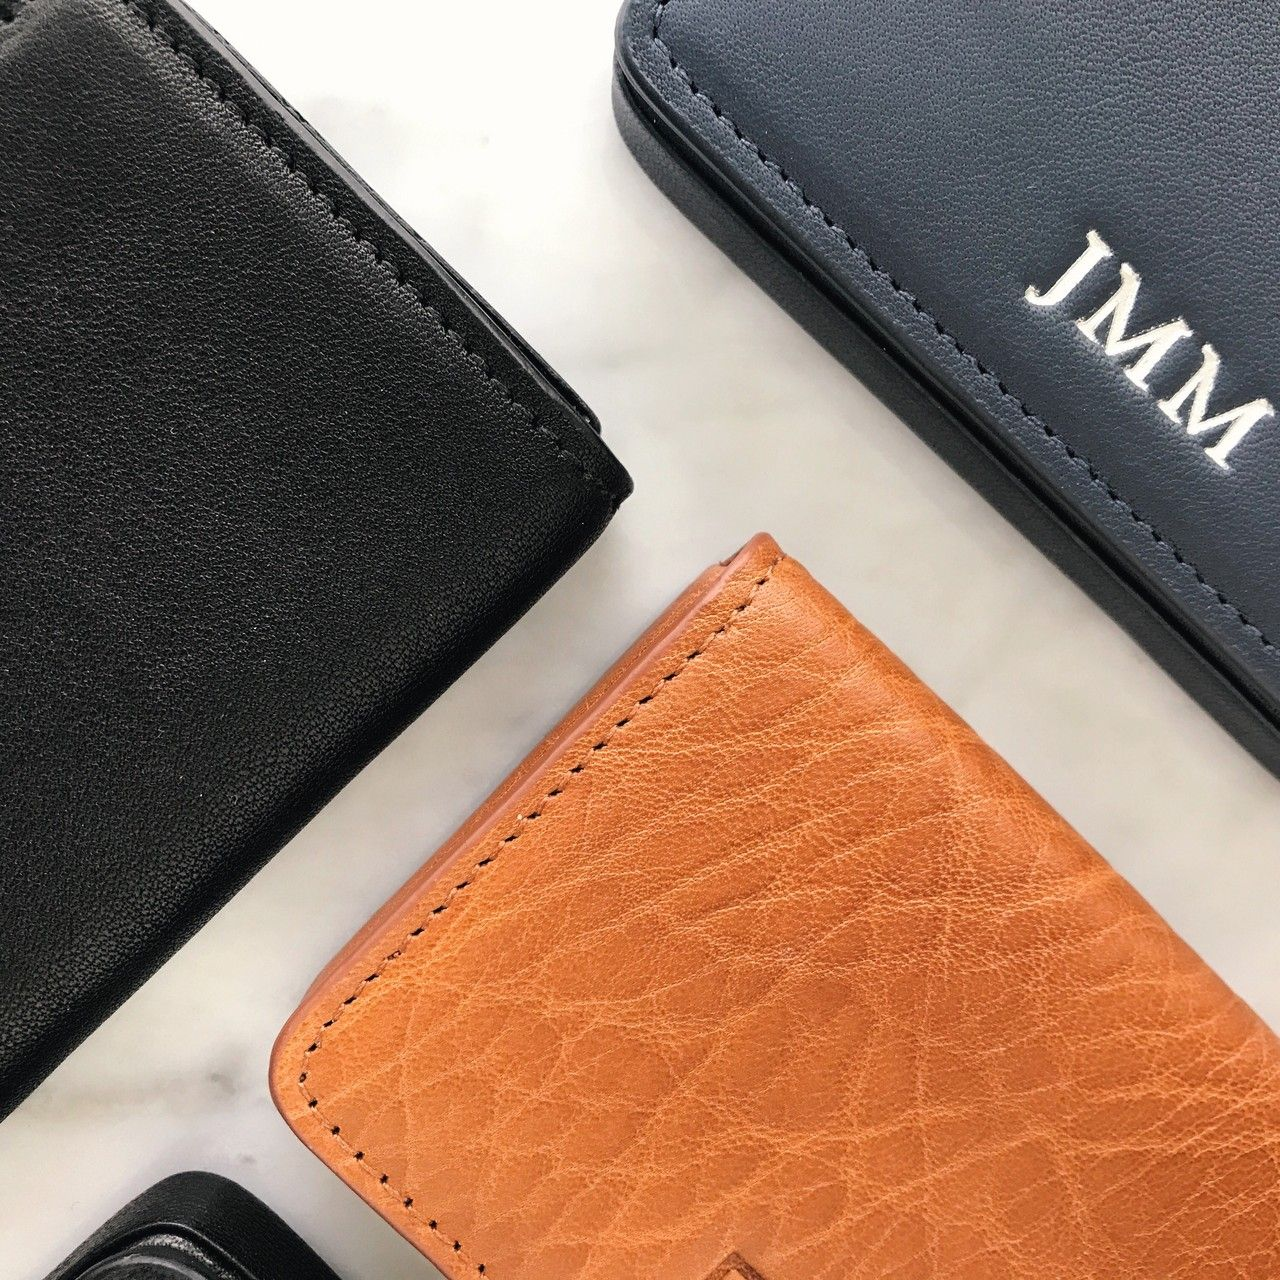 Personalized leather business card cases say hello simple personalized leather business card cases say hello simple stylish and secure these magicingreecefo Gallery